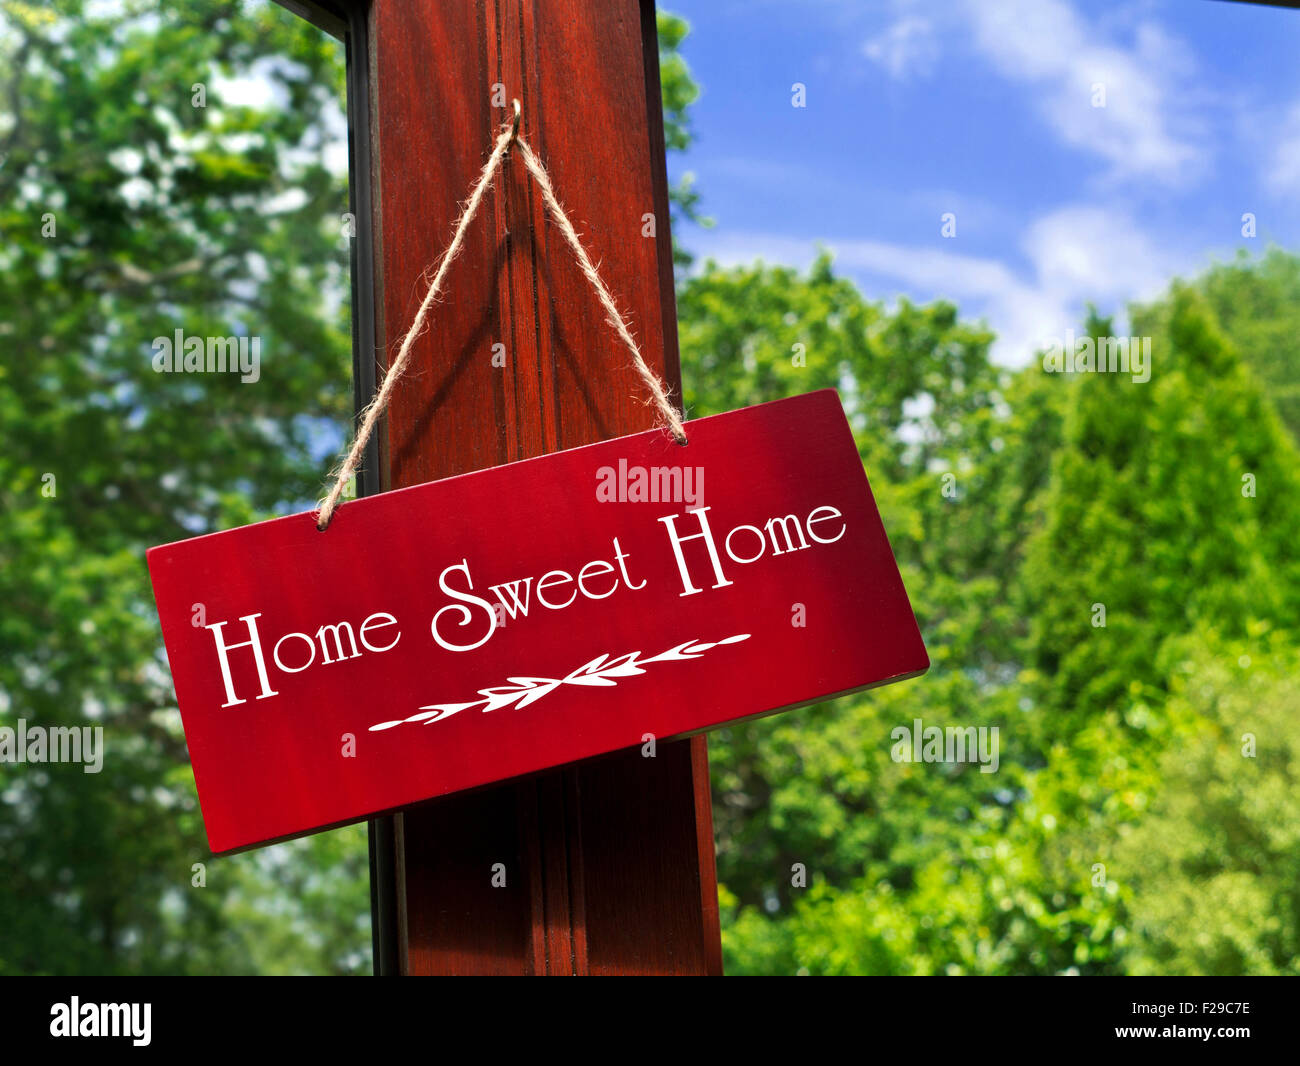 'Home Sweet Home' wooden sign hanging in a garden room with foliage and blue sky in background - Stock Image